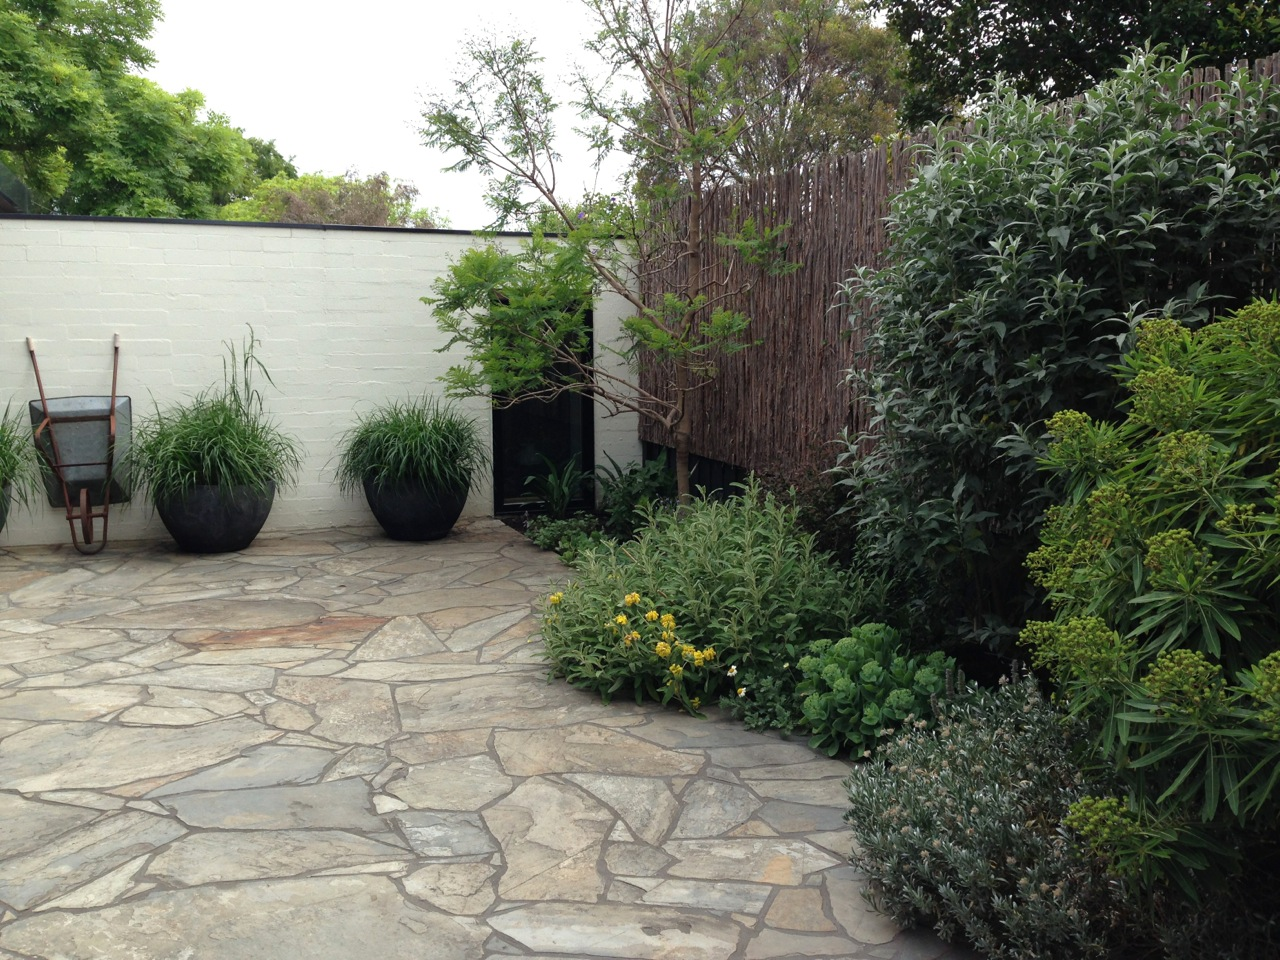 The best garden designer in australia janna schreier for Courtyard garden designs australia